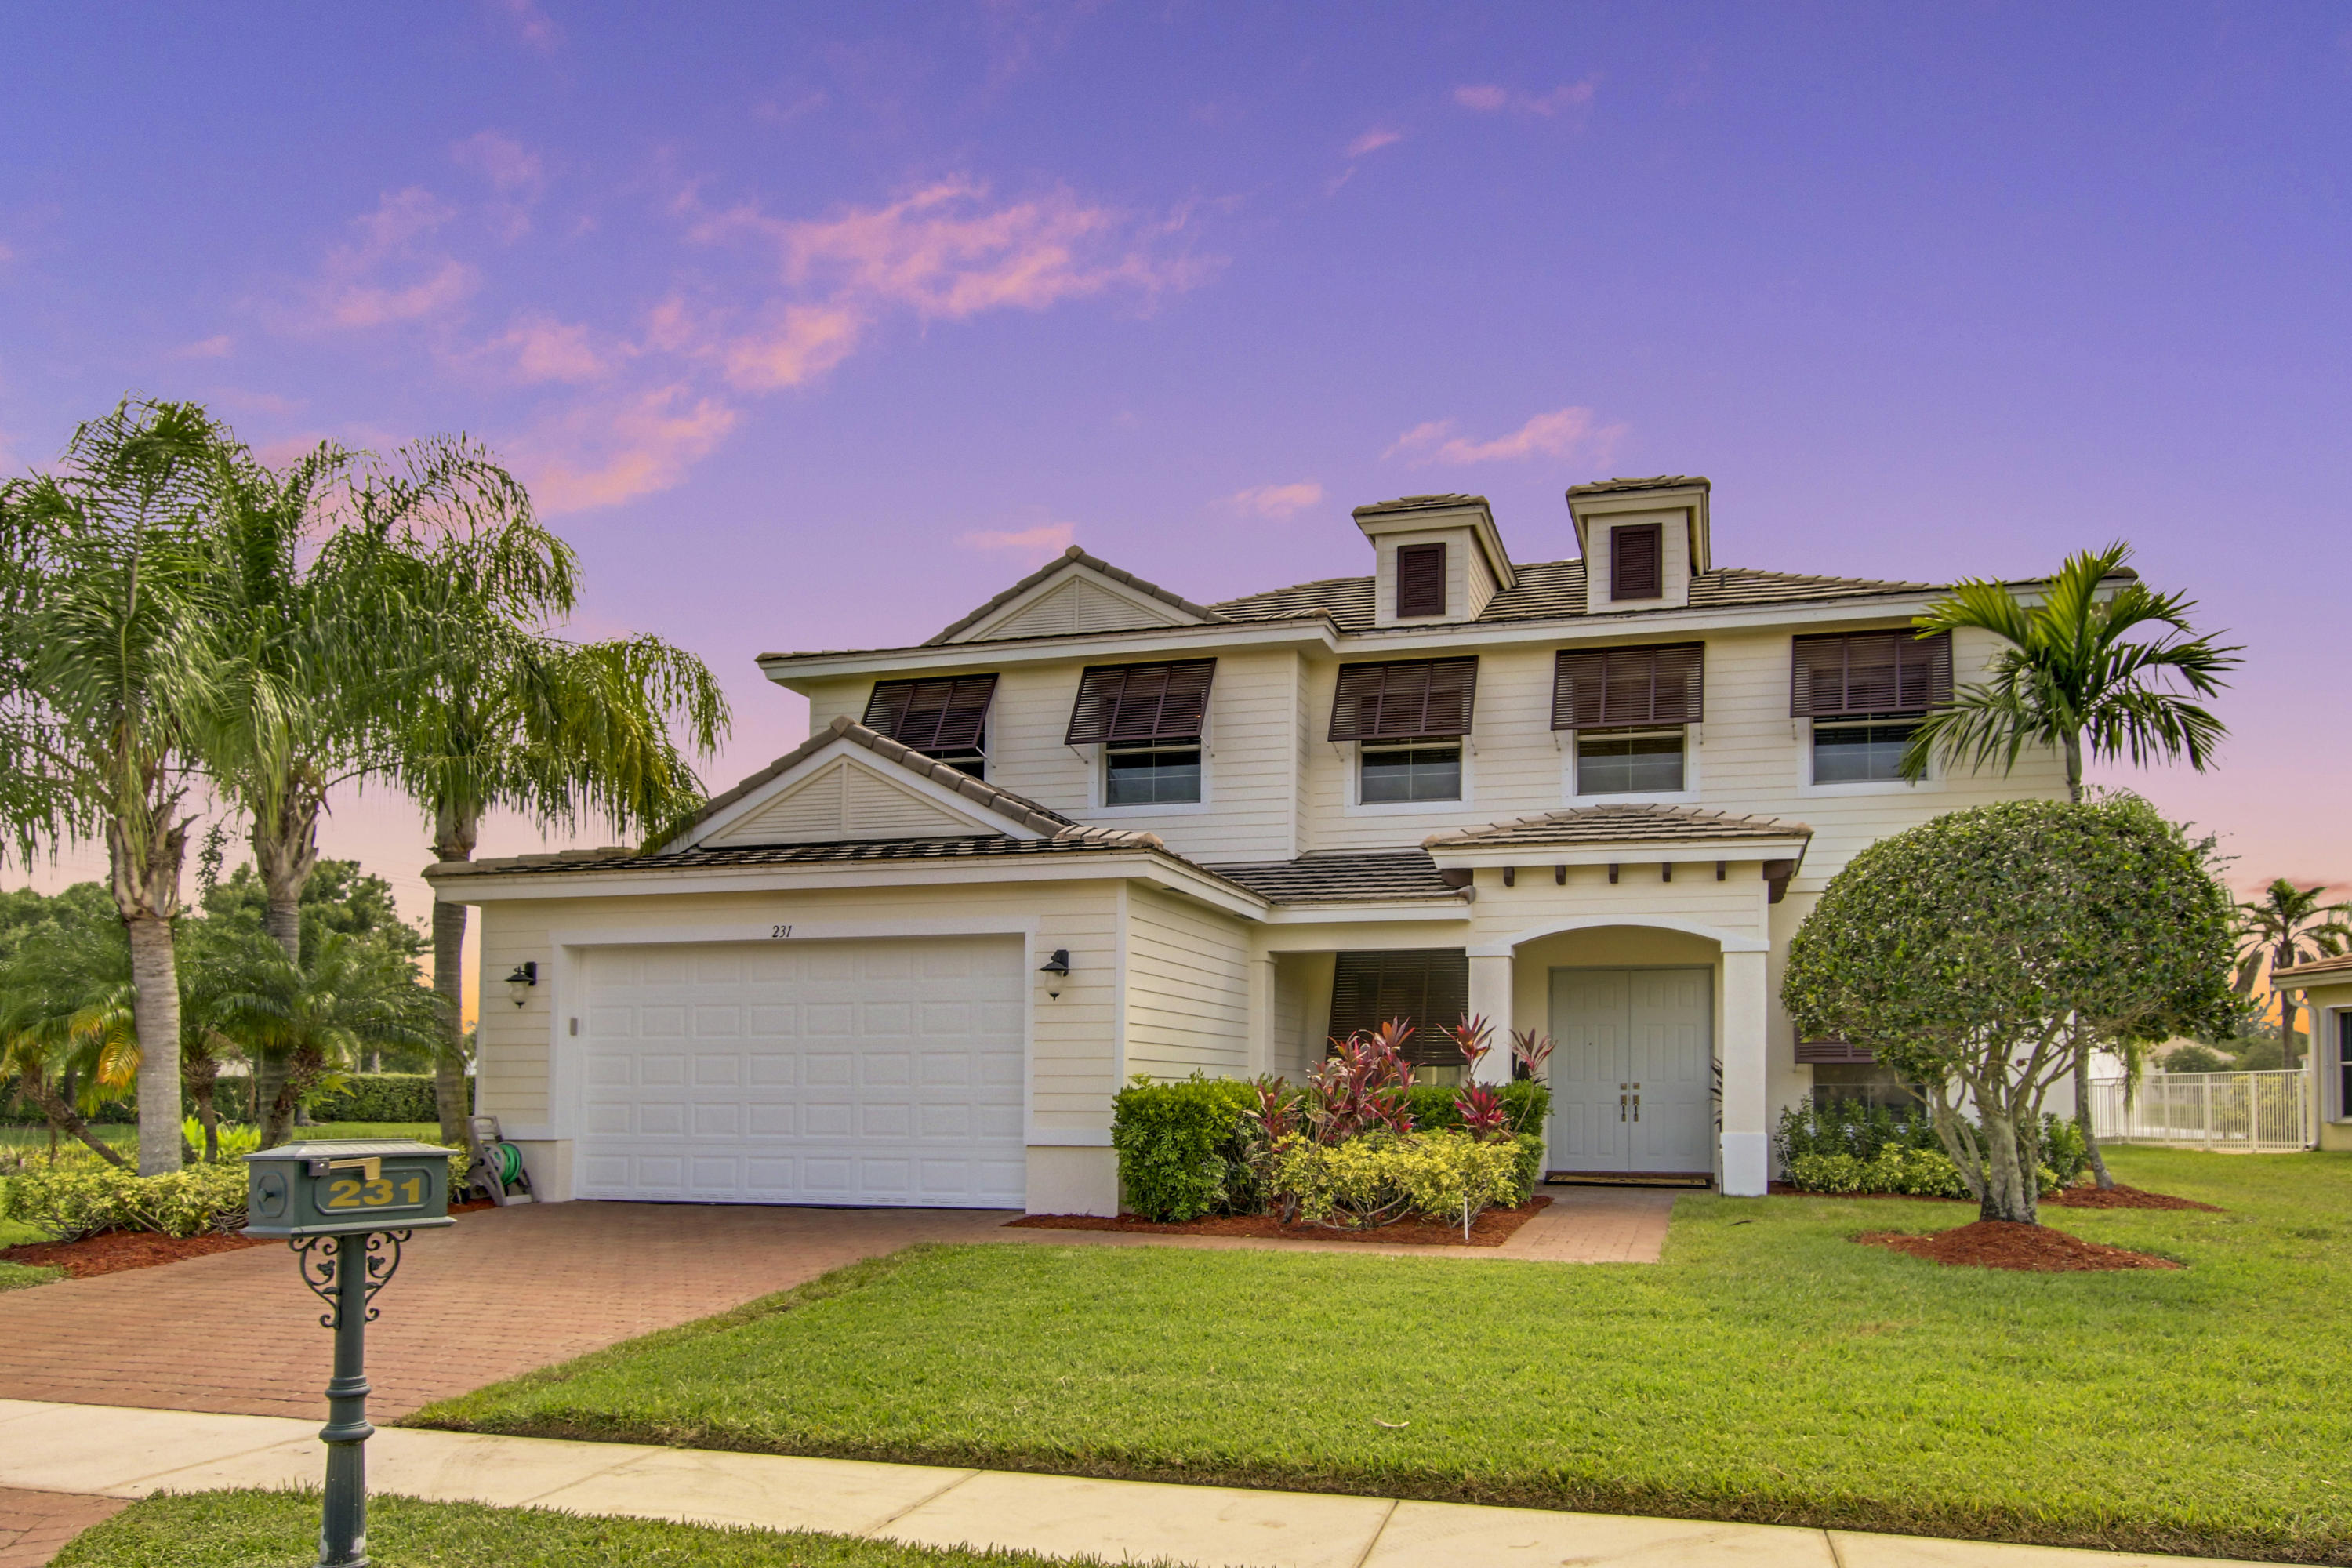 ROYAL PALM BEACH HOMES